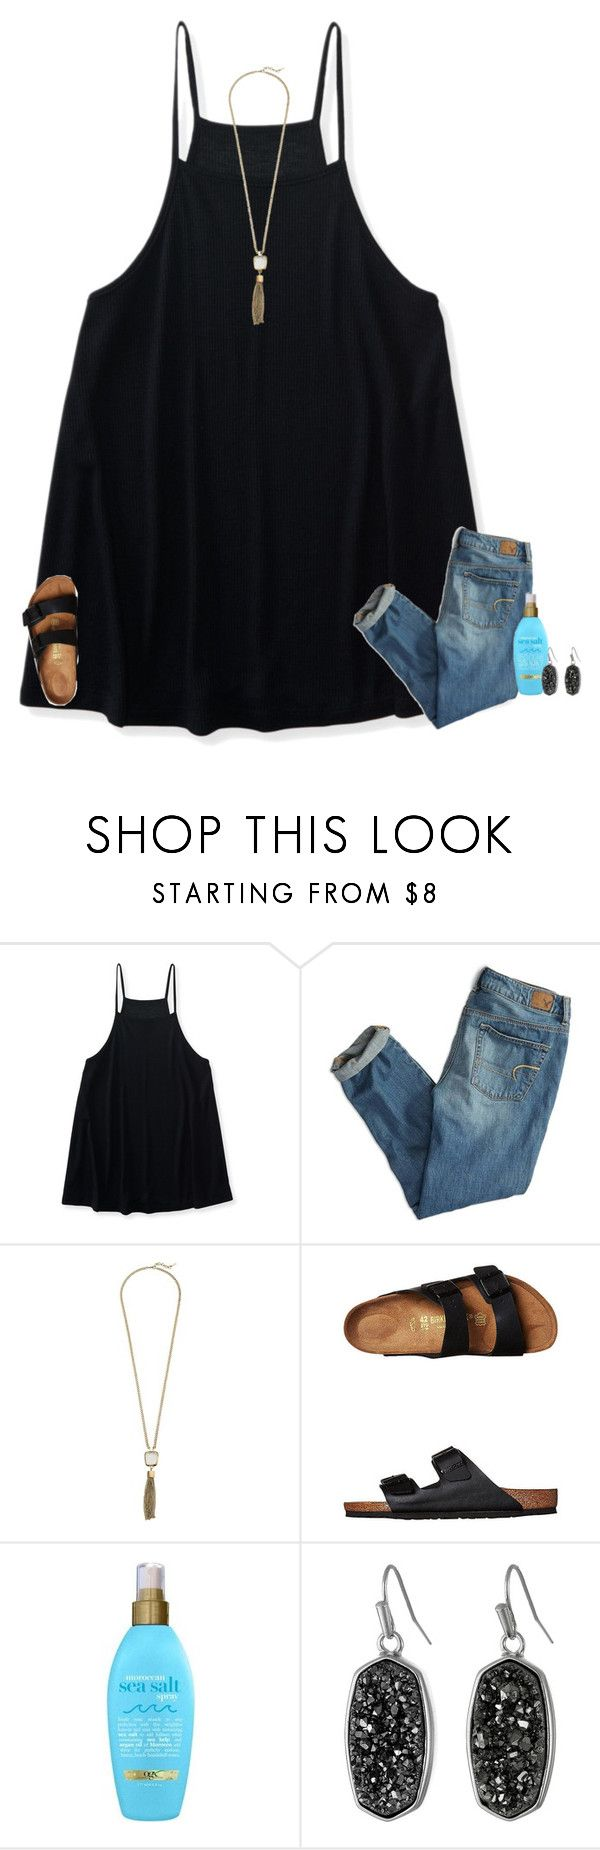 """RTD PLZZZ FOR SHOUTOUT!"" by texasgirlfashion ❤ liked on Polyvore featuring Aéropostale, American Eagle Outfitters, Cole Haan, Birkenstock, Organix and Kendra Scott"